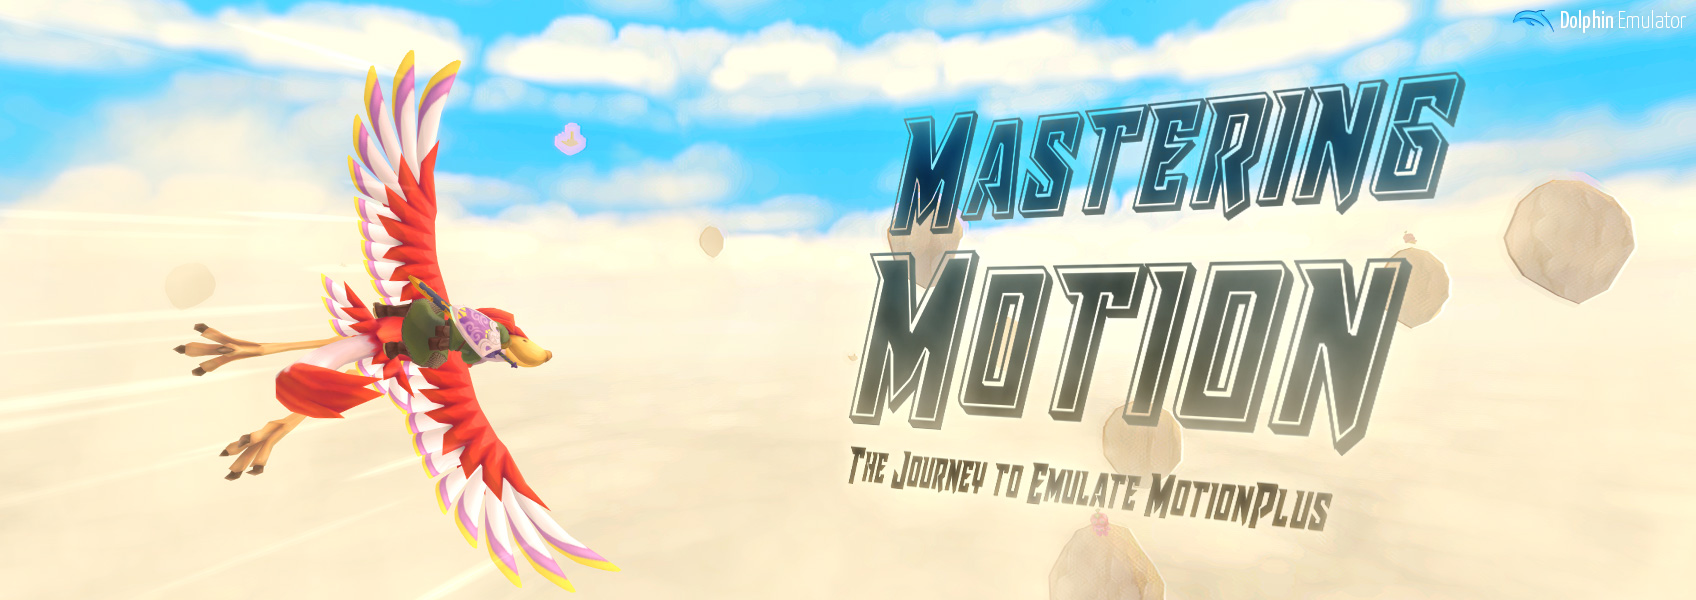 Dolphin Emulator - Mastering Motion: The Journey to Emulate